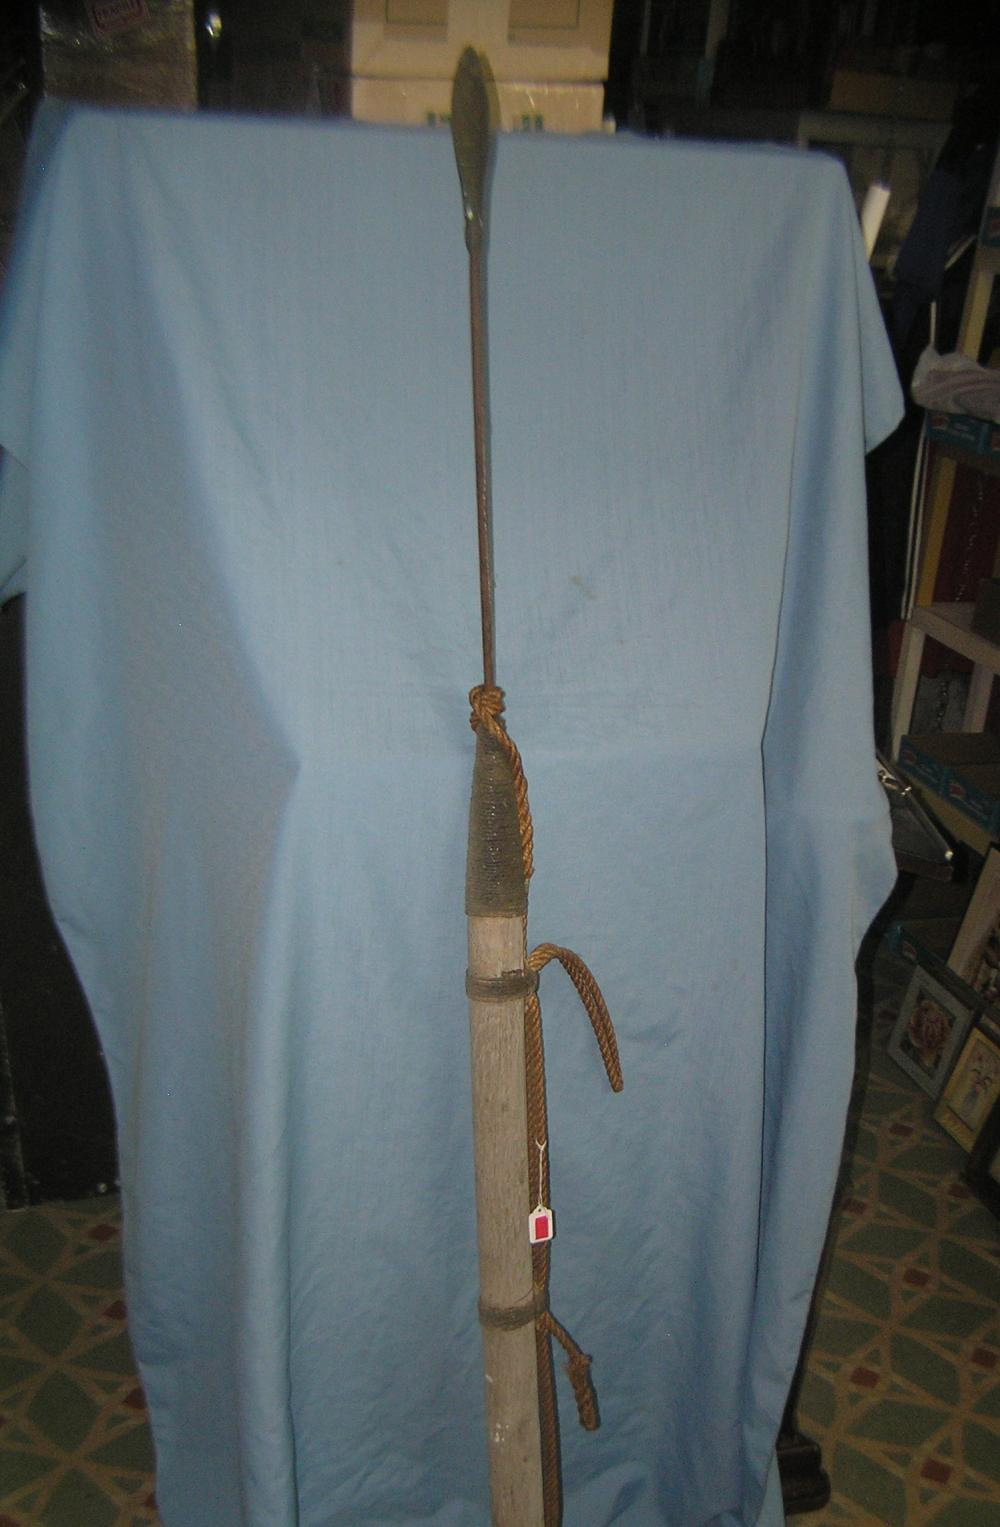 Whale spear movie prop